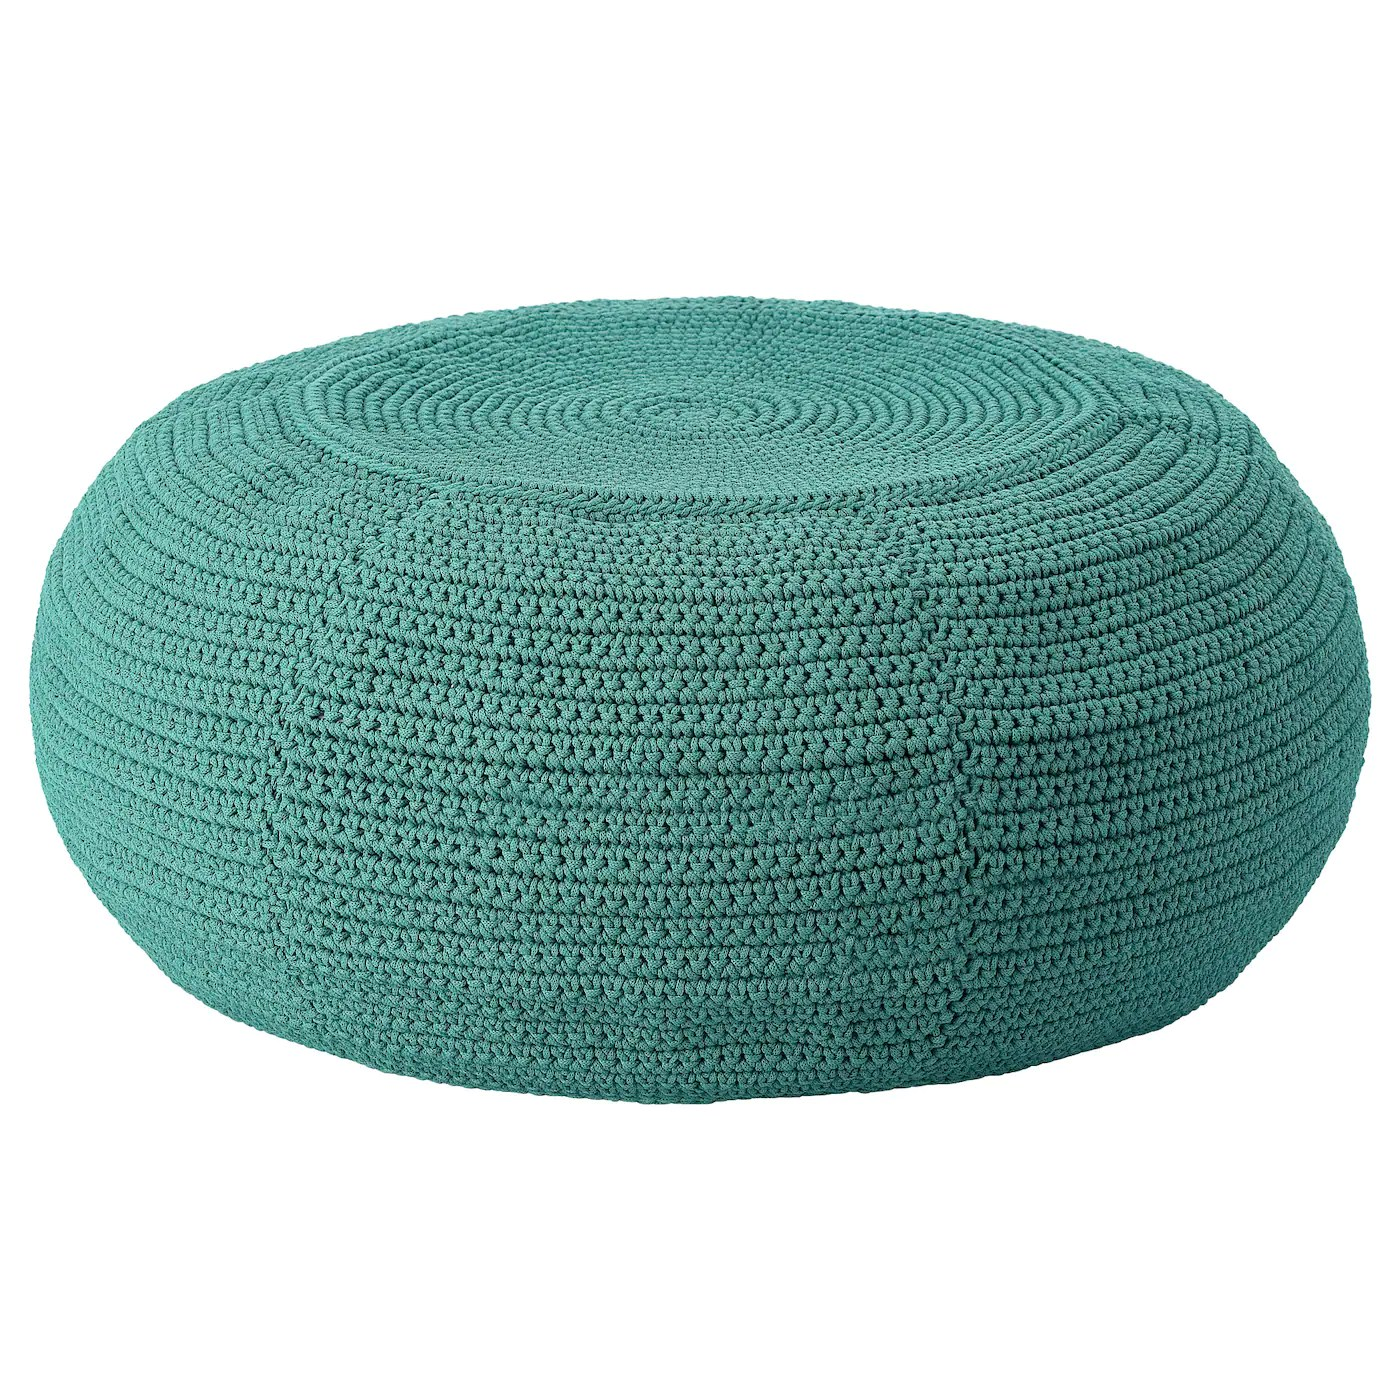 OtterÖn InnerskÄr Pouffe In Outdoor Dark Green Ikea